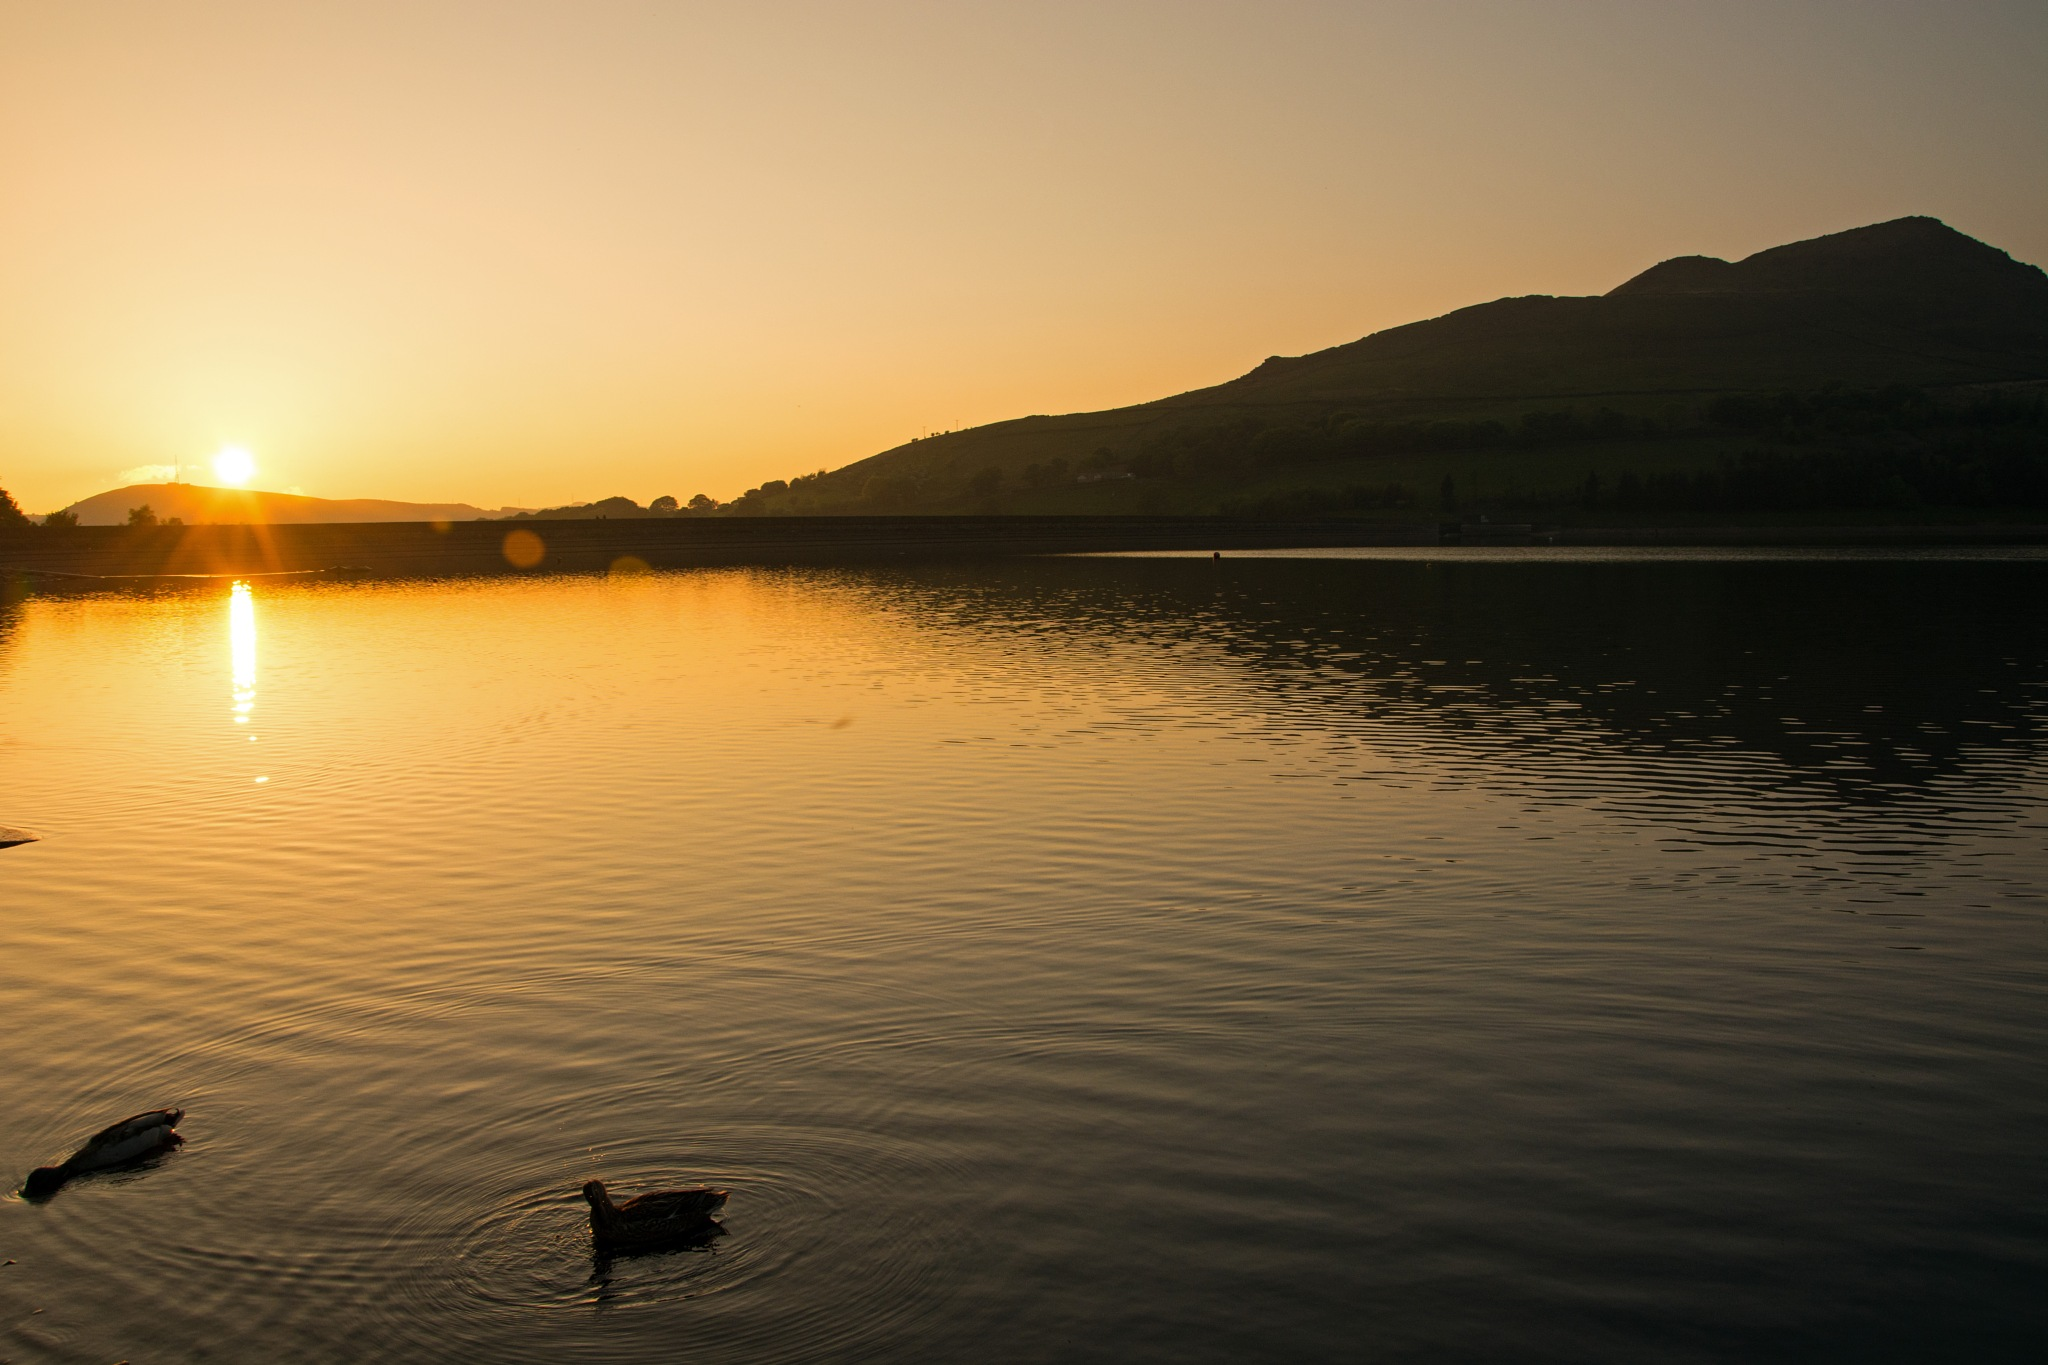 Sunset at Dovestones 3 by ianjck